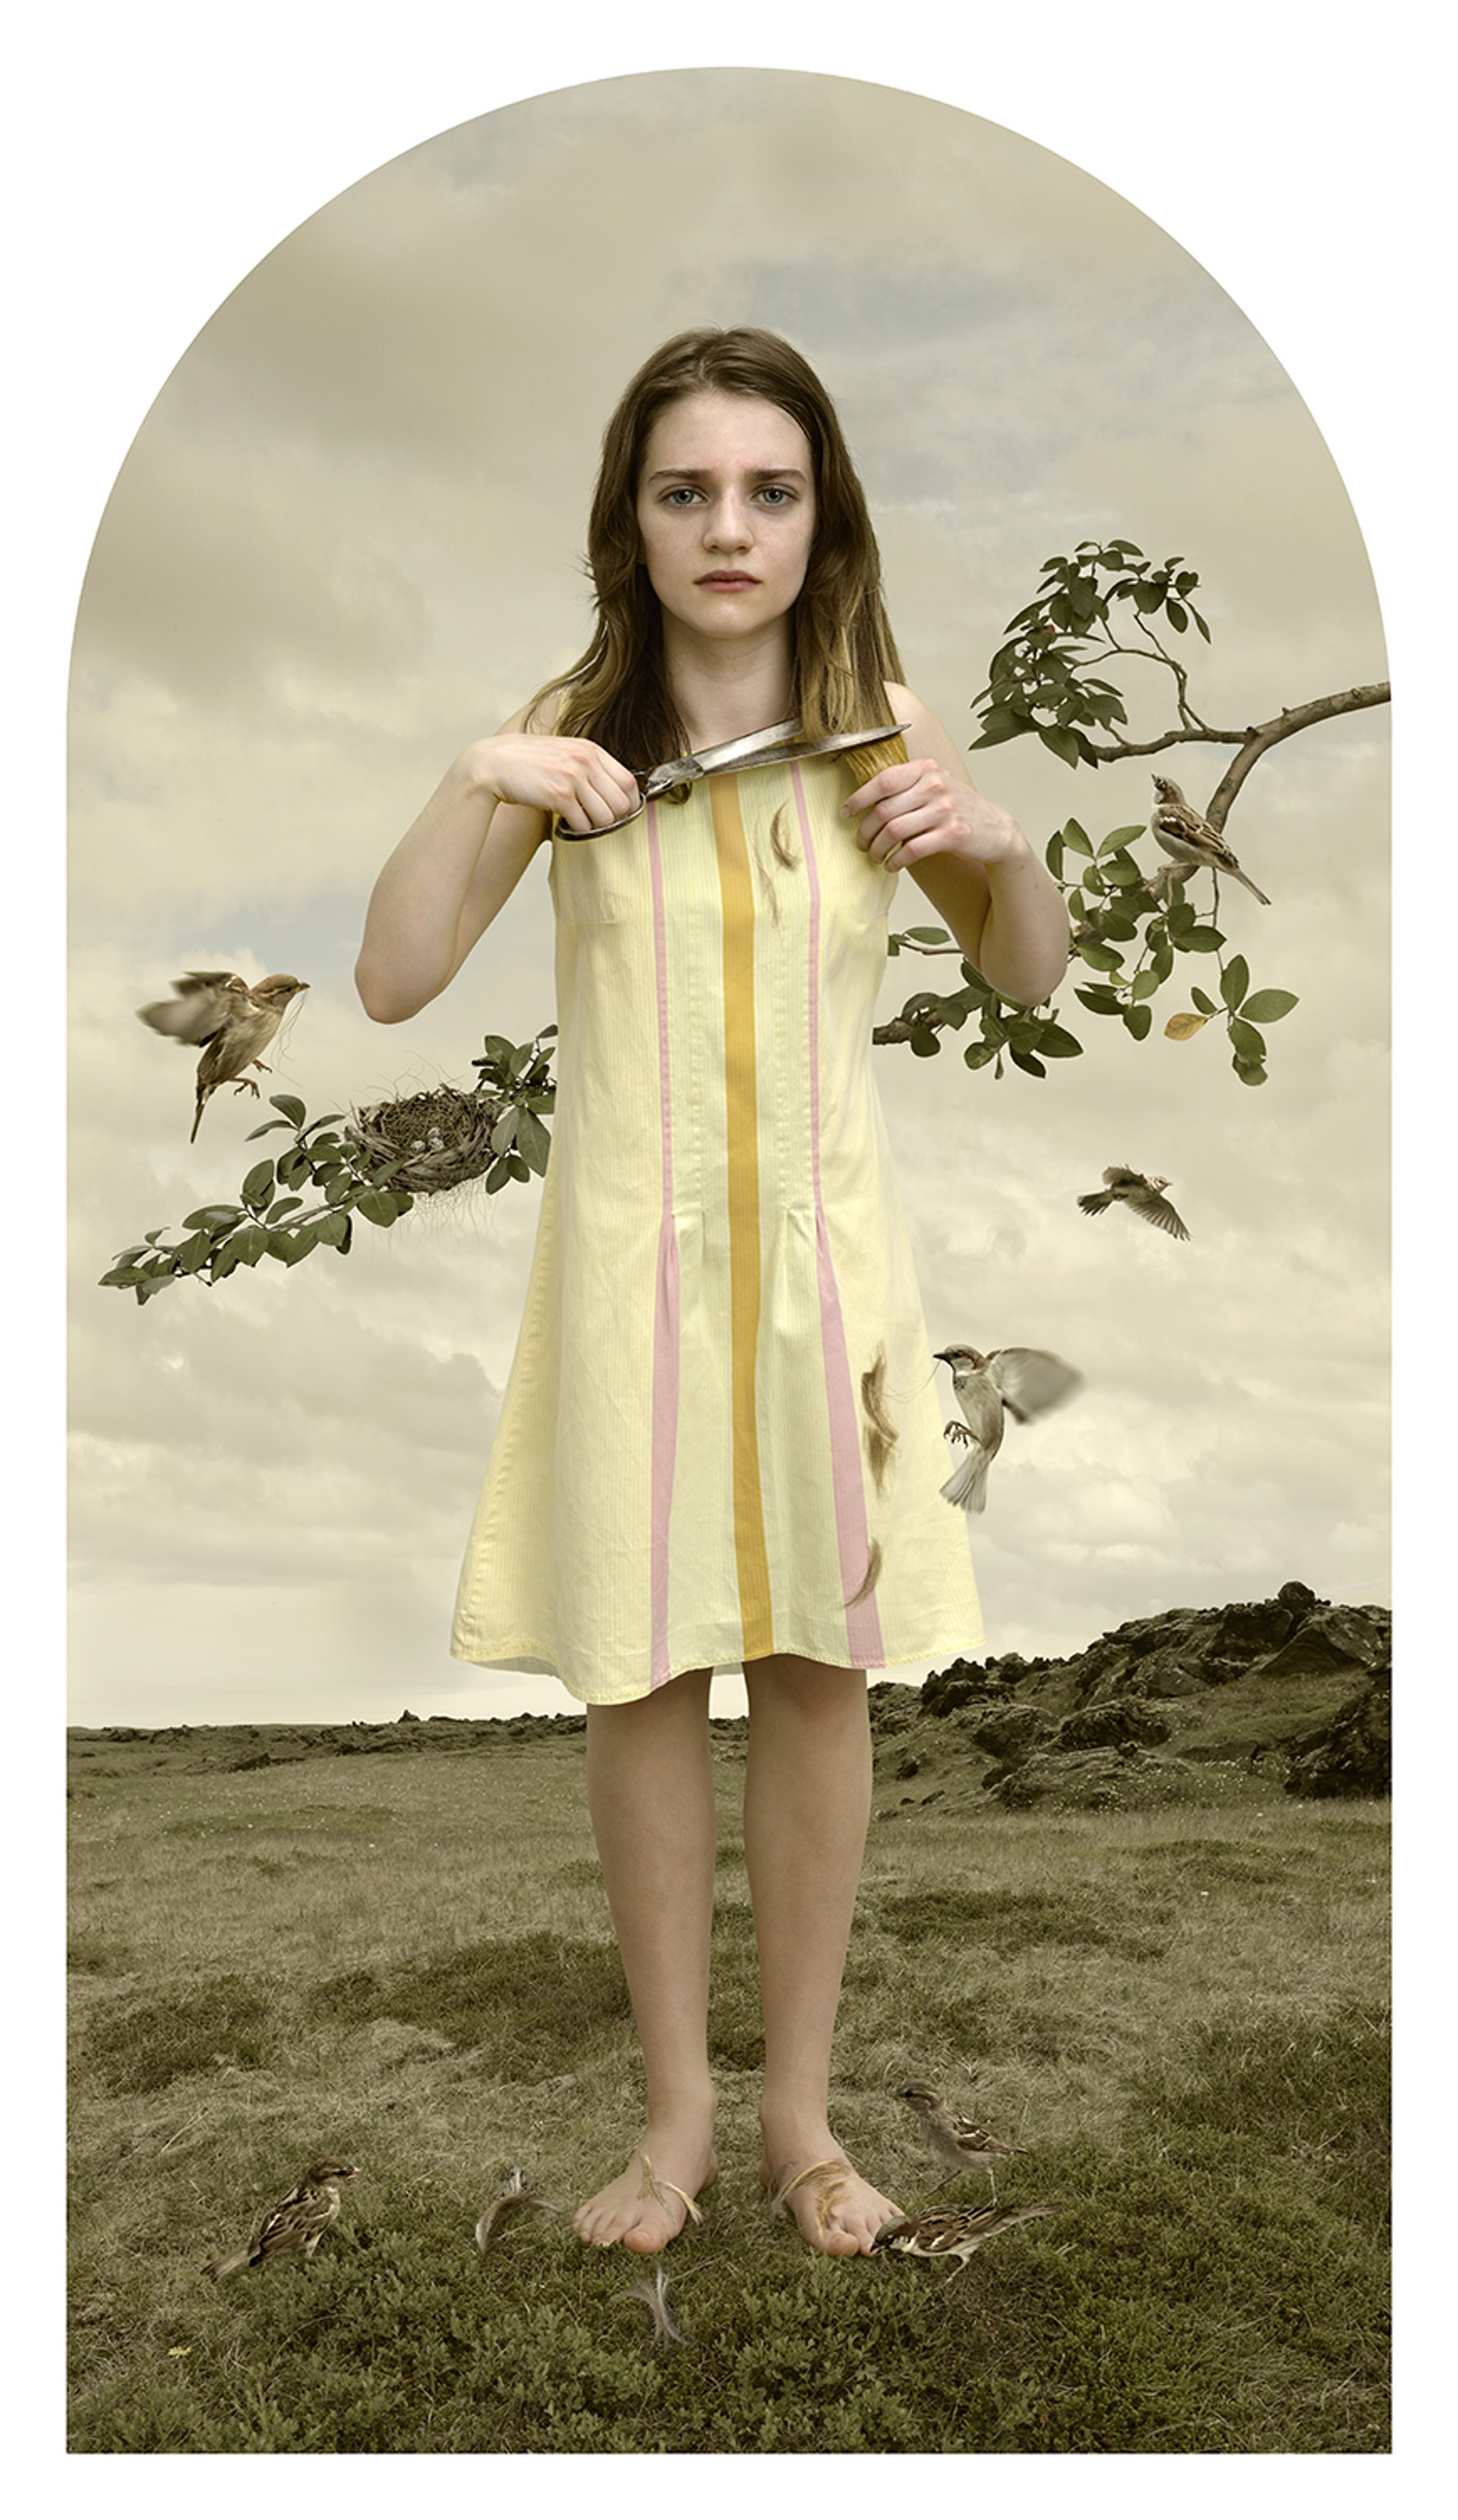 Nesting with Scissors by Tom Chambers